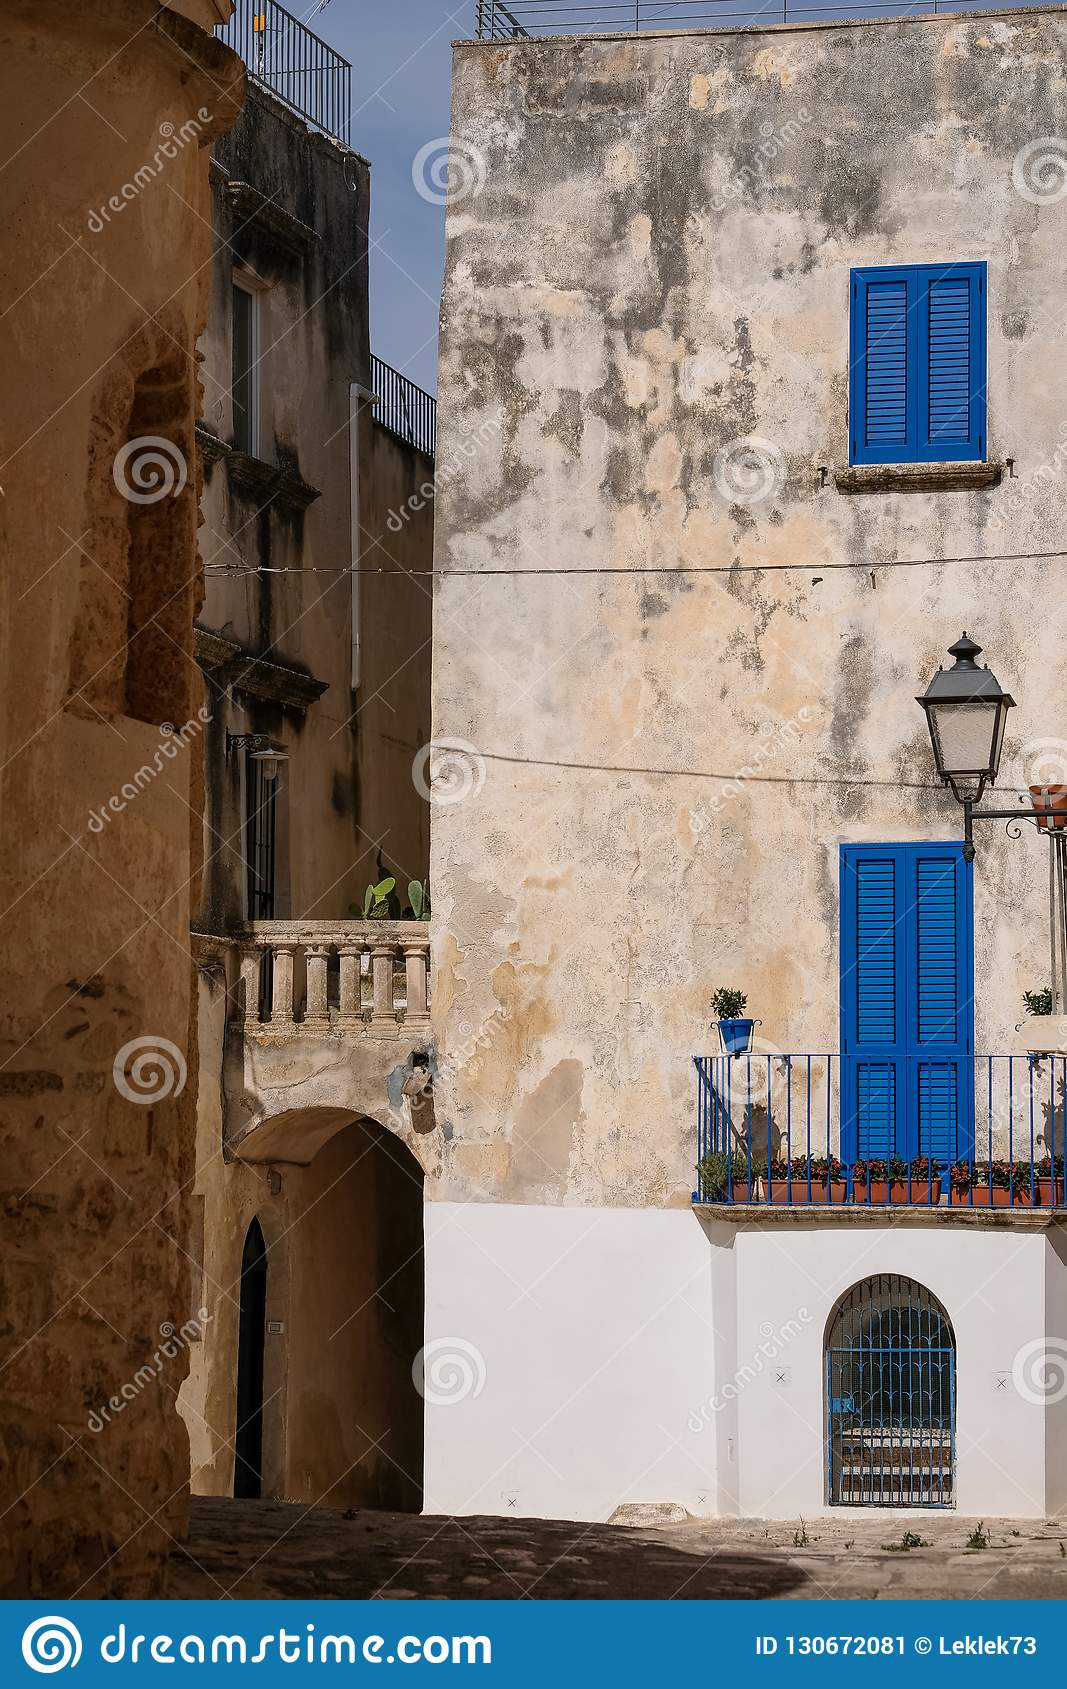 Building with blue shutters on a street in the coastal town of Otranto on the Salento peninsula, Puglia, South Italy.